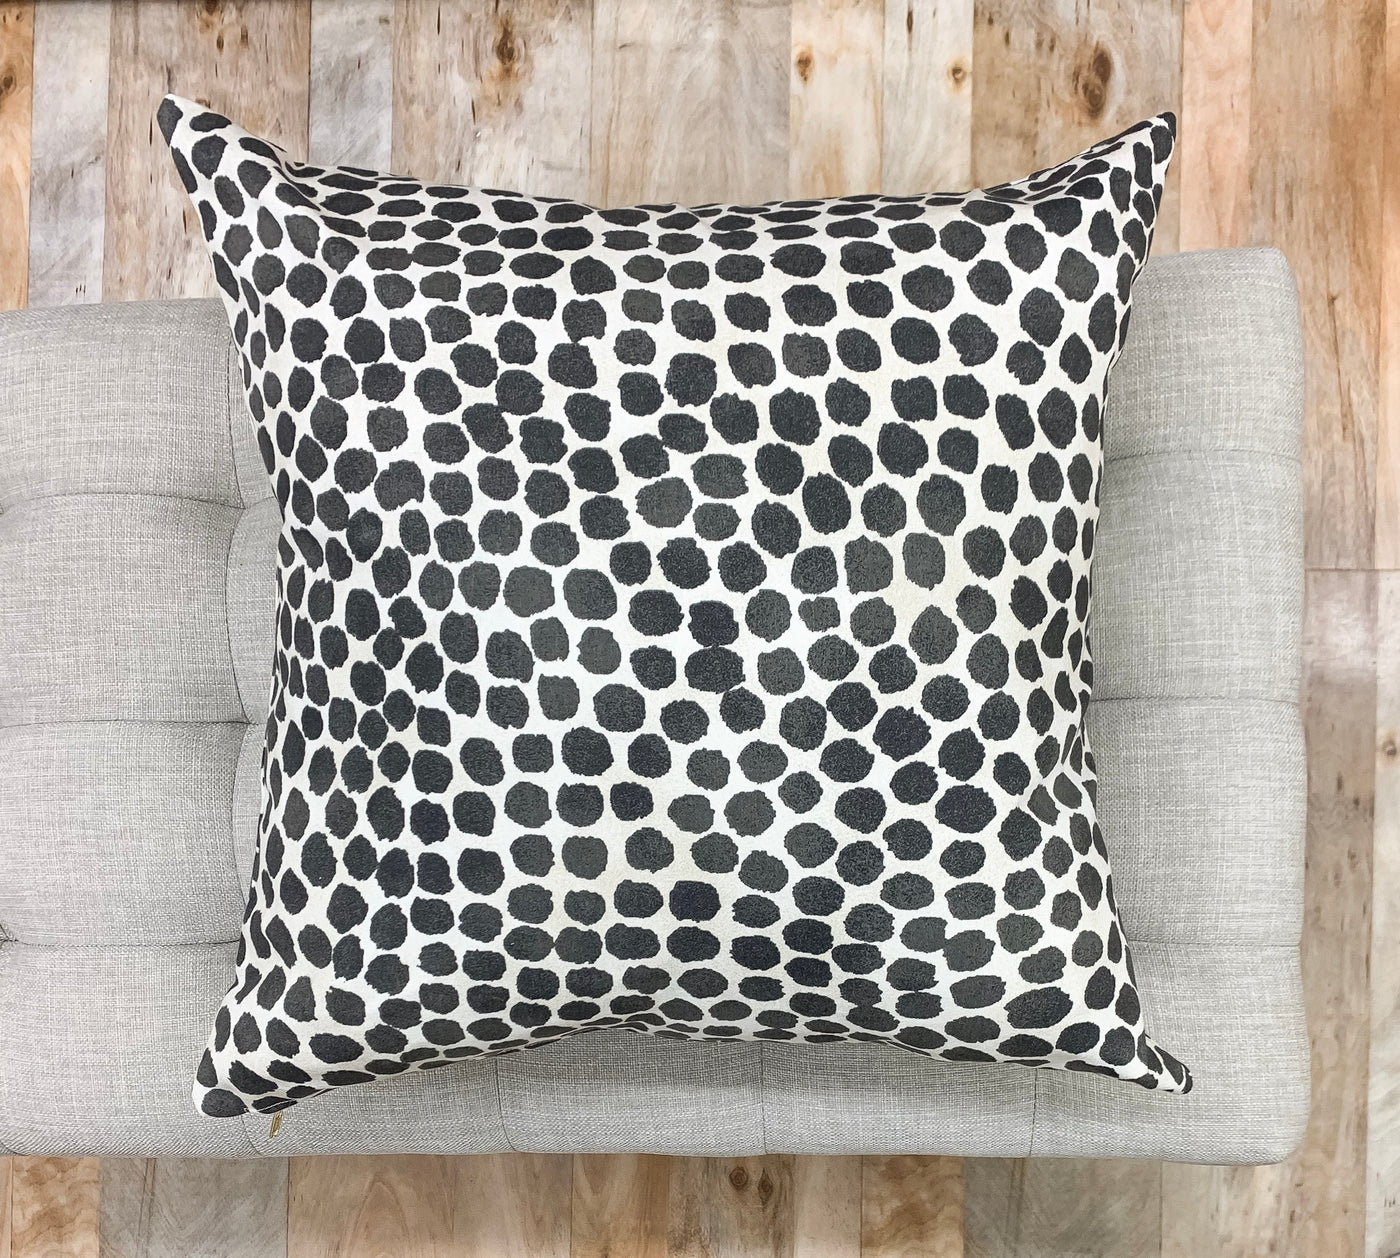 Classic animal print pillows - Studio Pillows